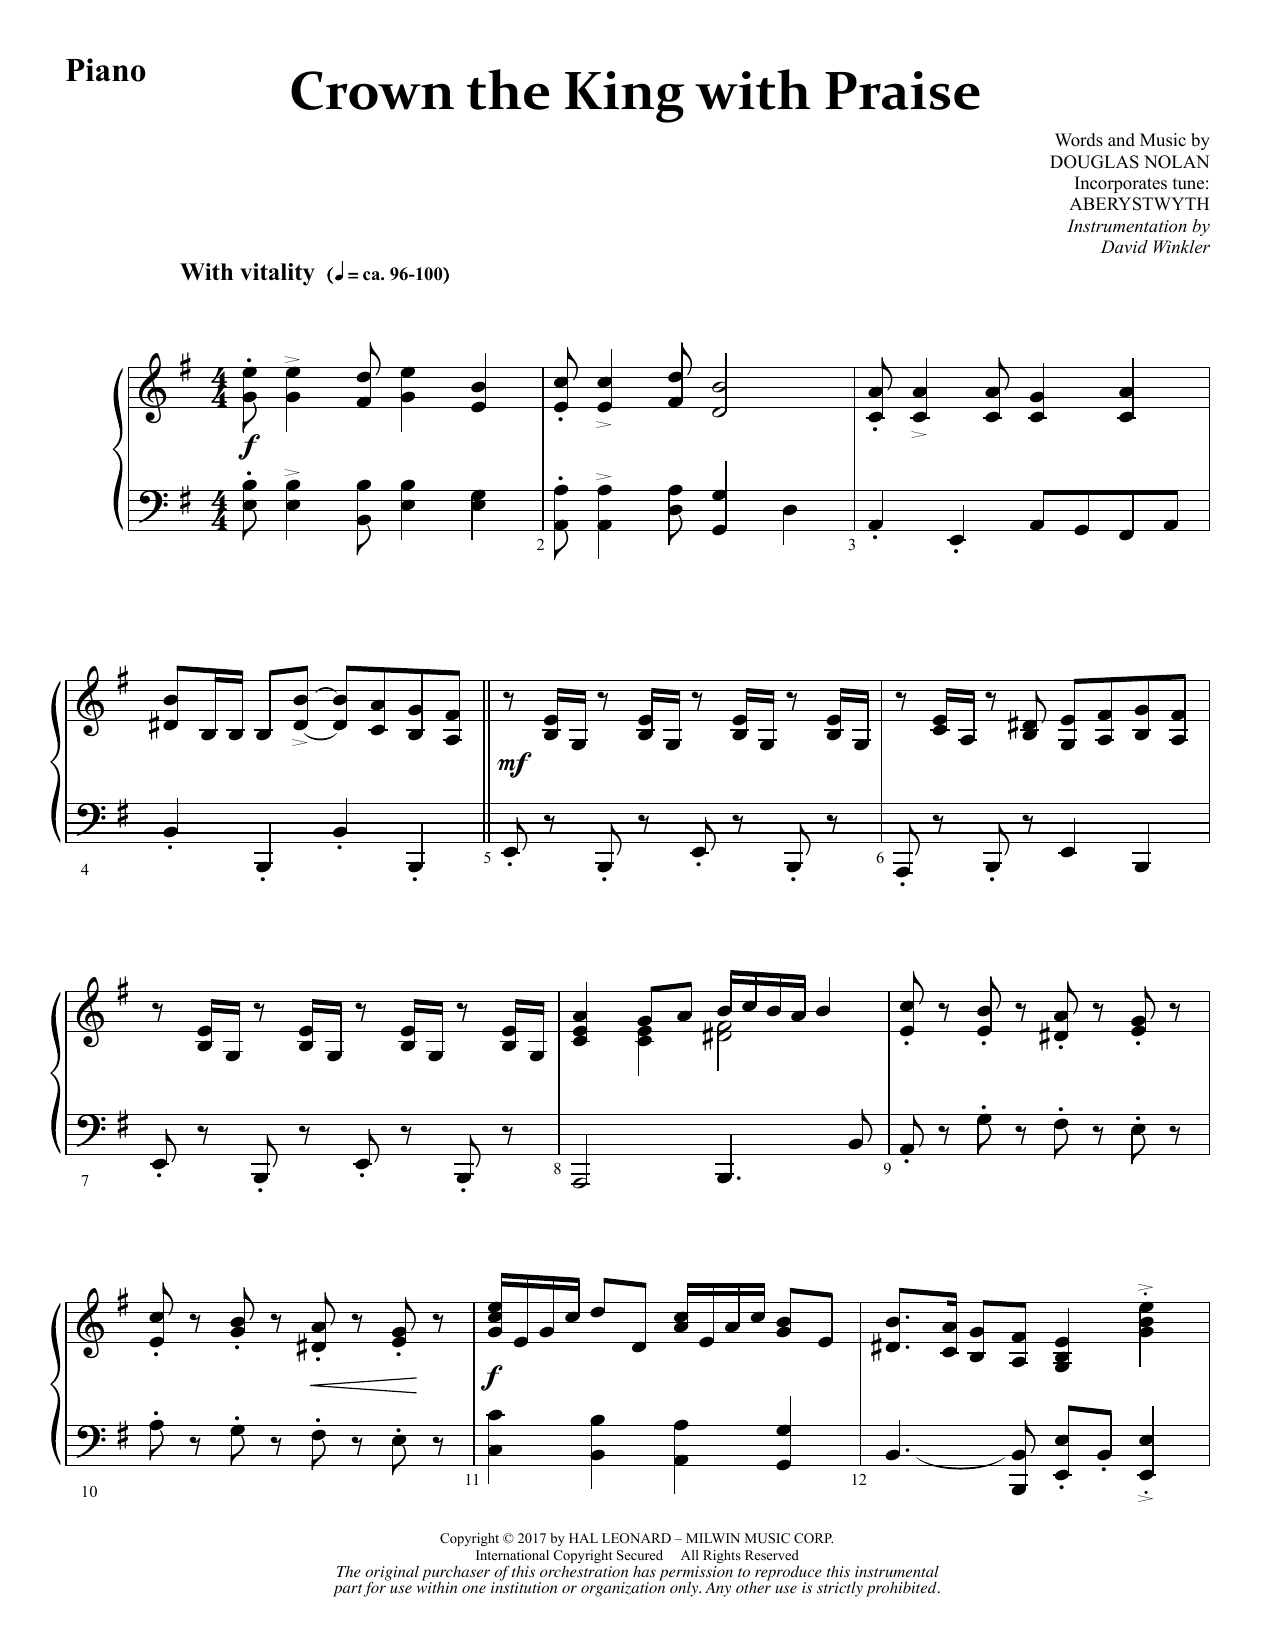 Douglas Nolan Crown the King with Praise - Piano sheet music notes and chords. Download Printable PDF.